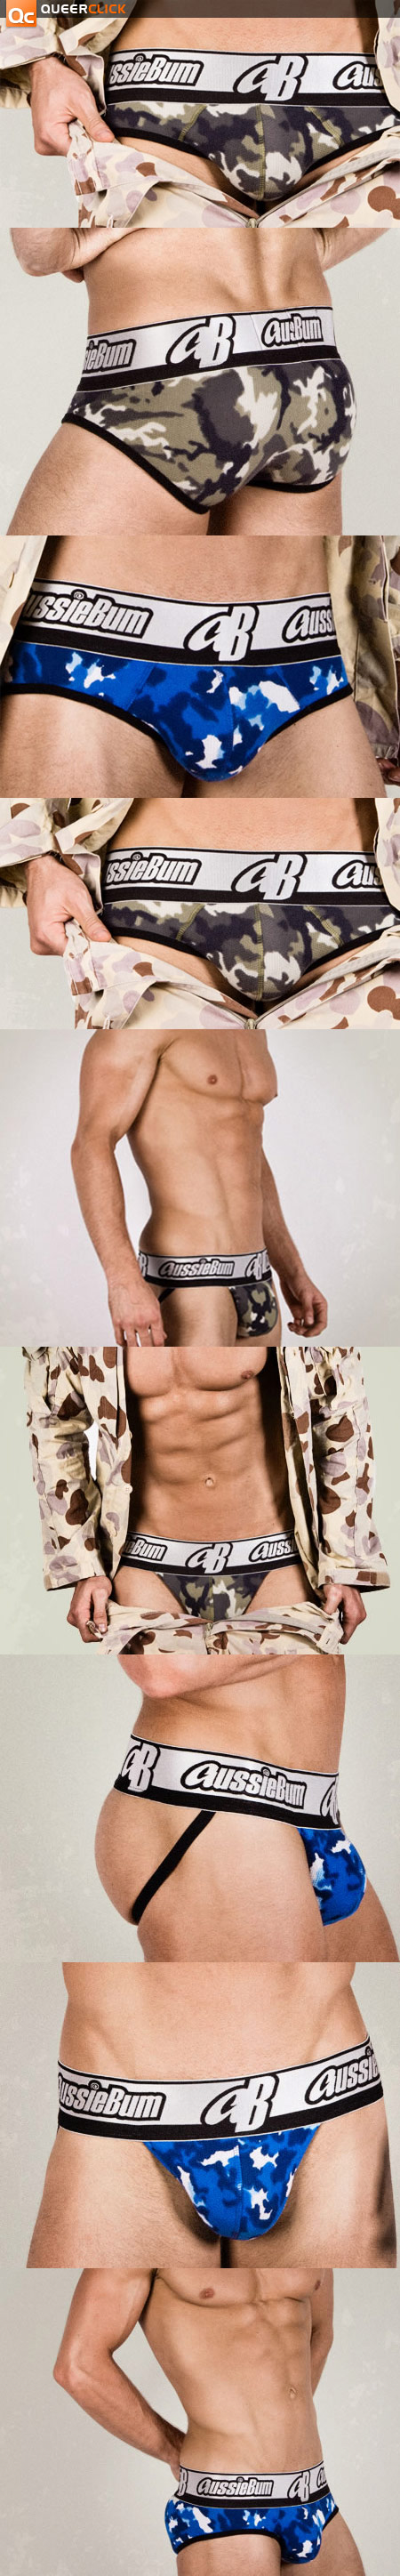 aussieBum's Soldier Will Make You Stand At Attention!